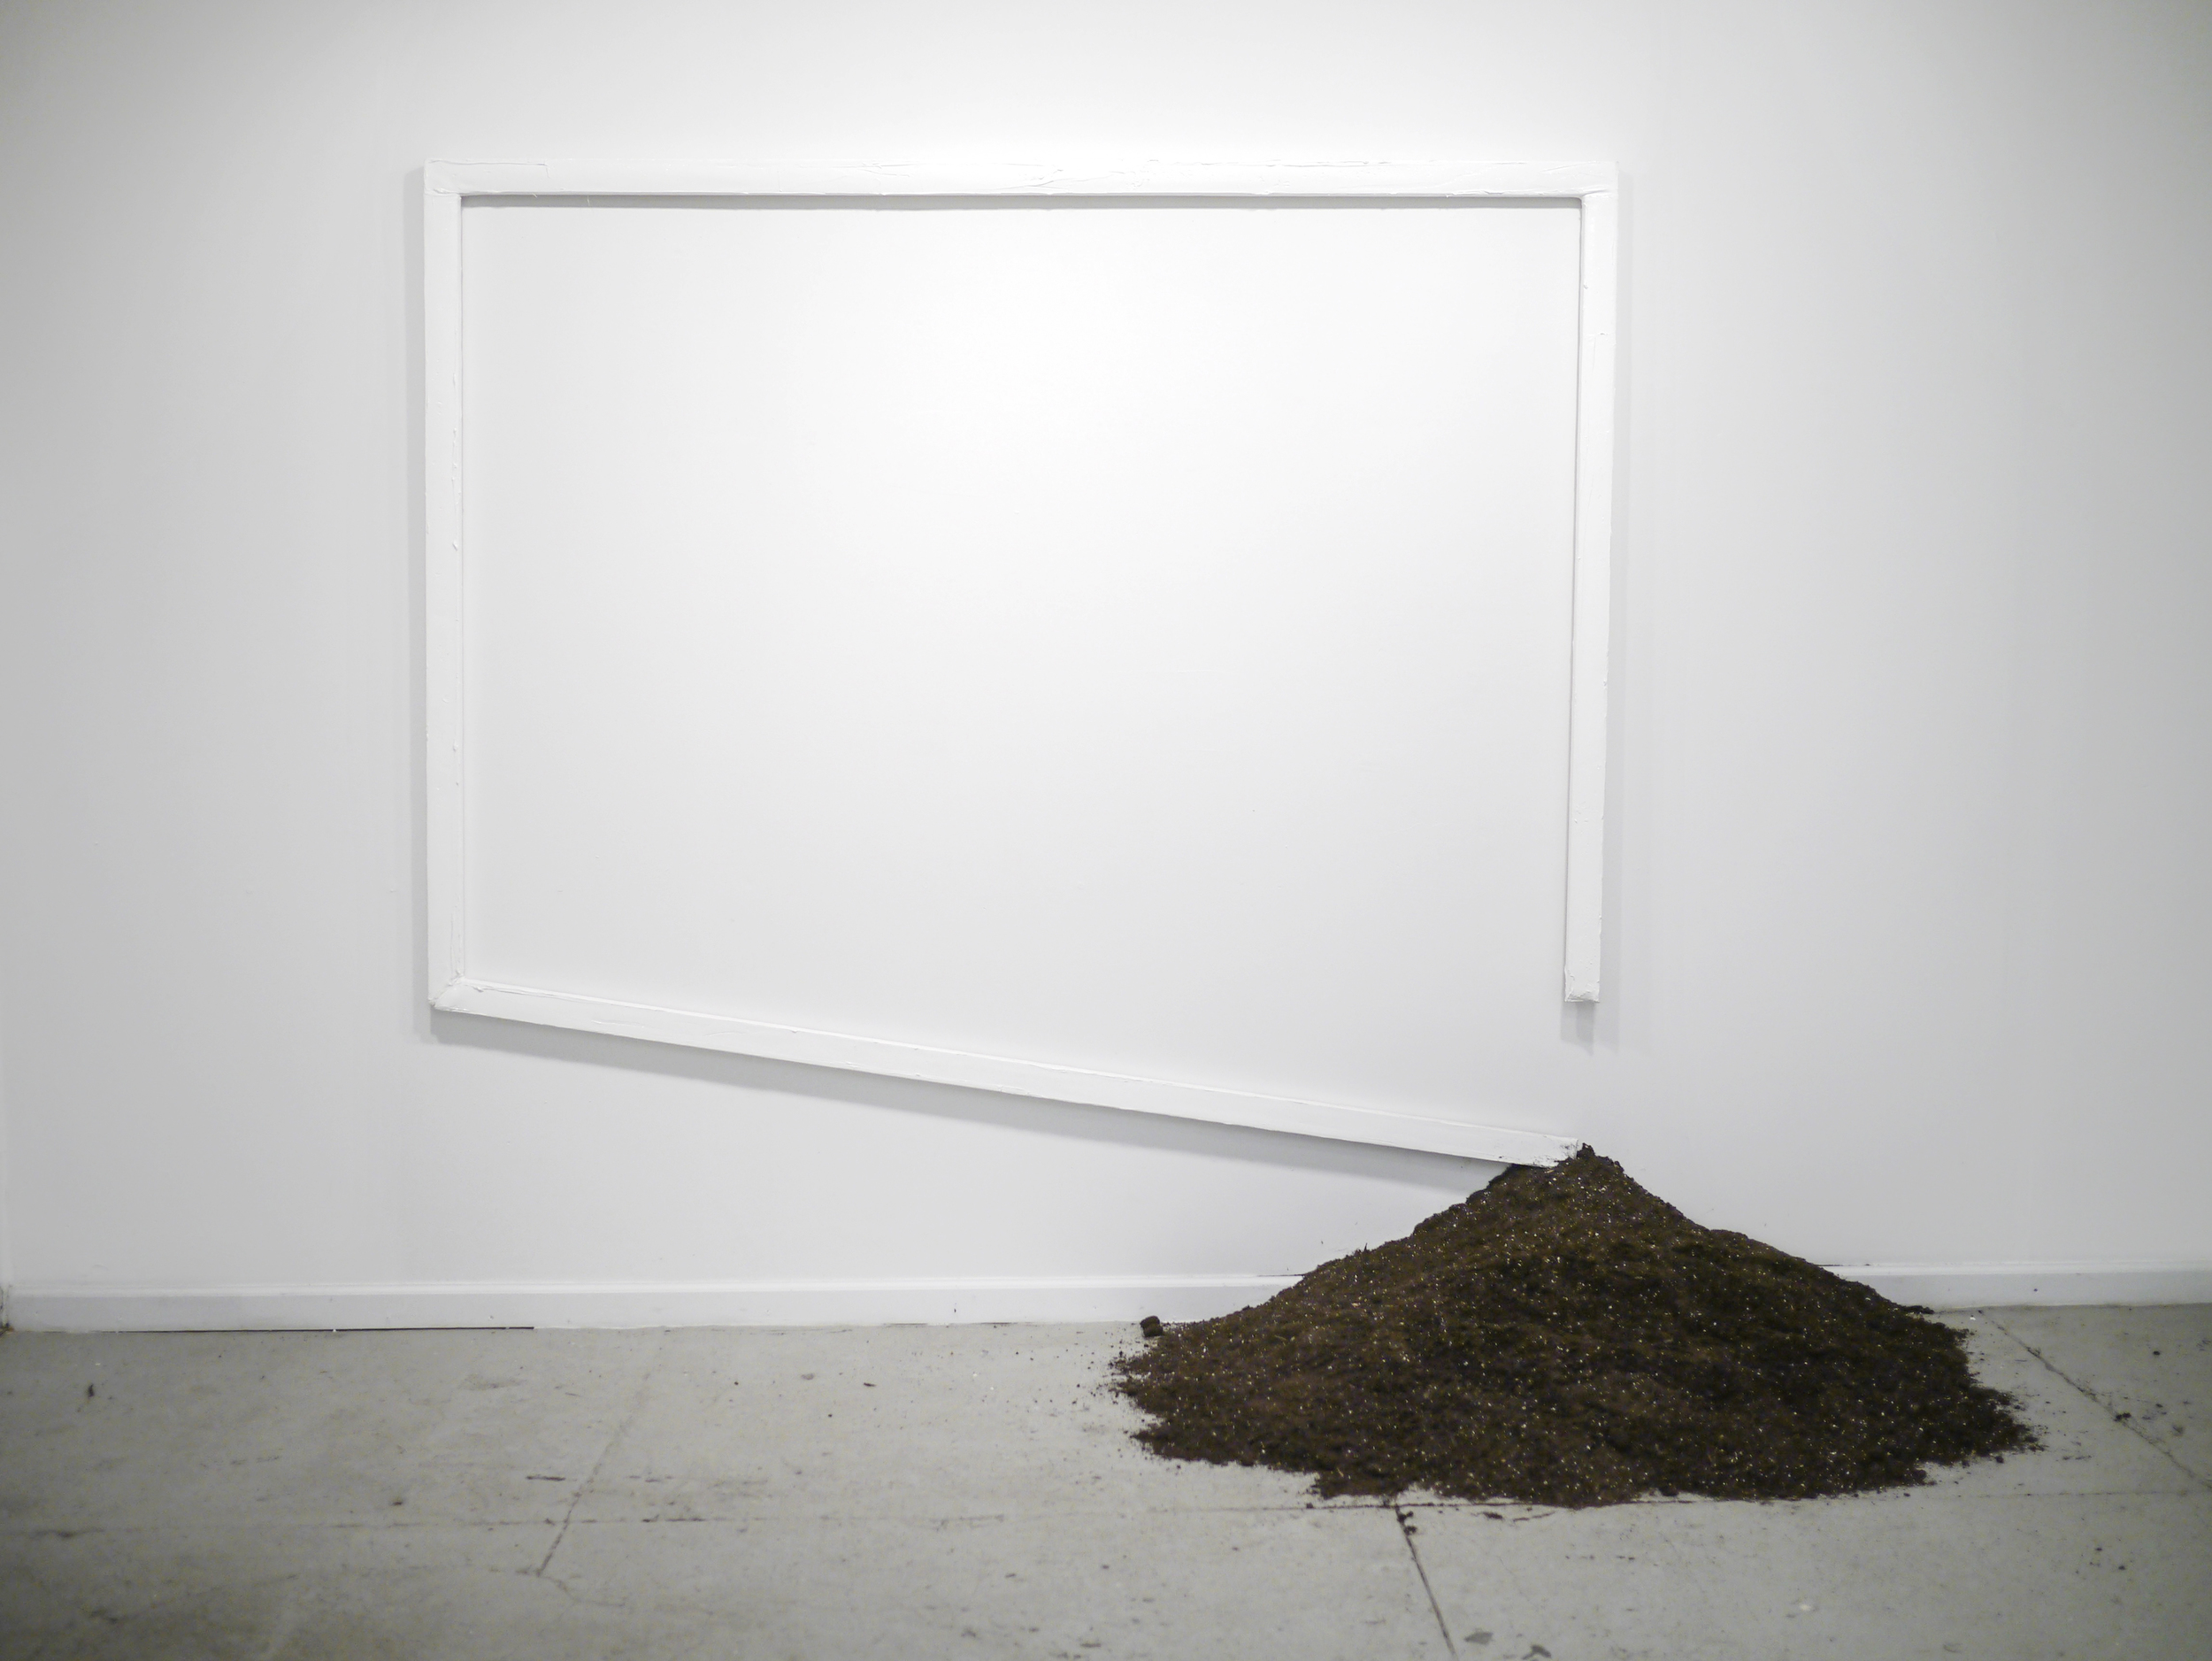 Dirt in Line  84 inches x 87 inches  Oil on canvas, dirt, objects hidden in dirt  2015